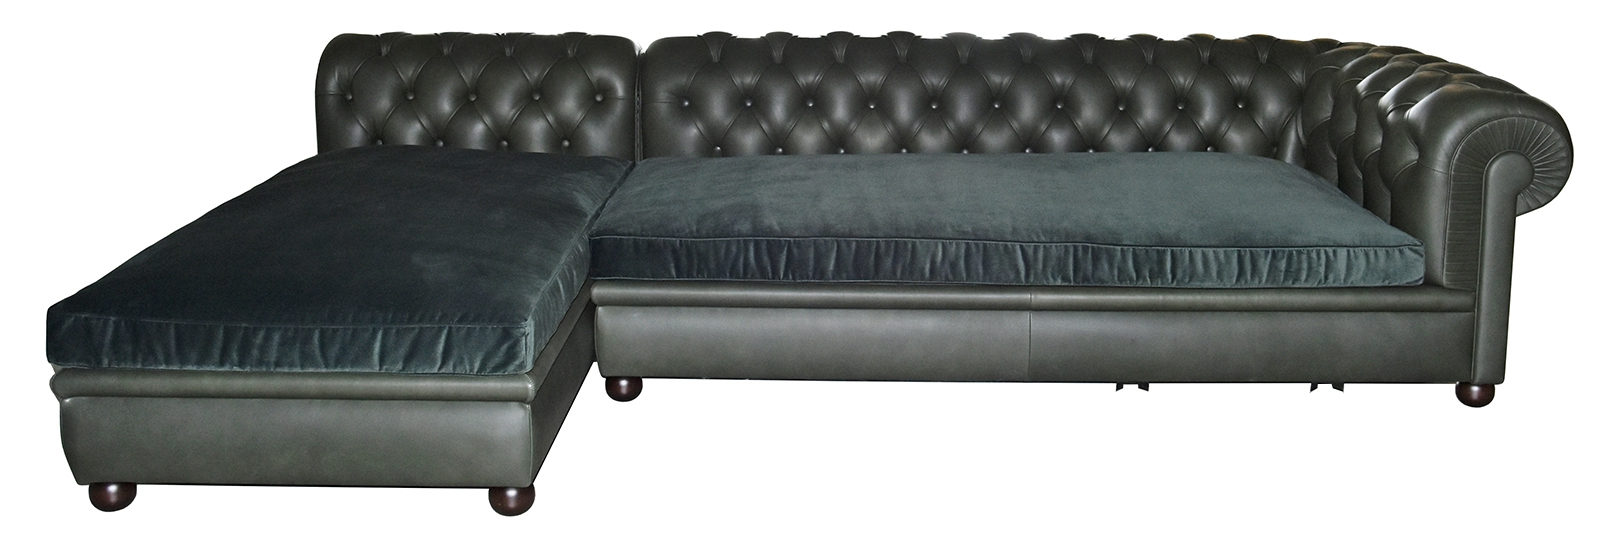 Sofas Chester Chesterfield Sofa Bauhaus Italy Chester Cester TheSofa